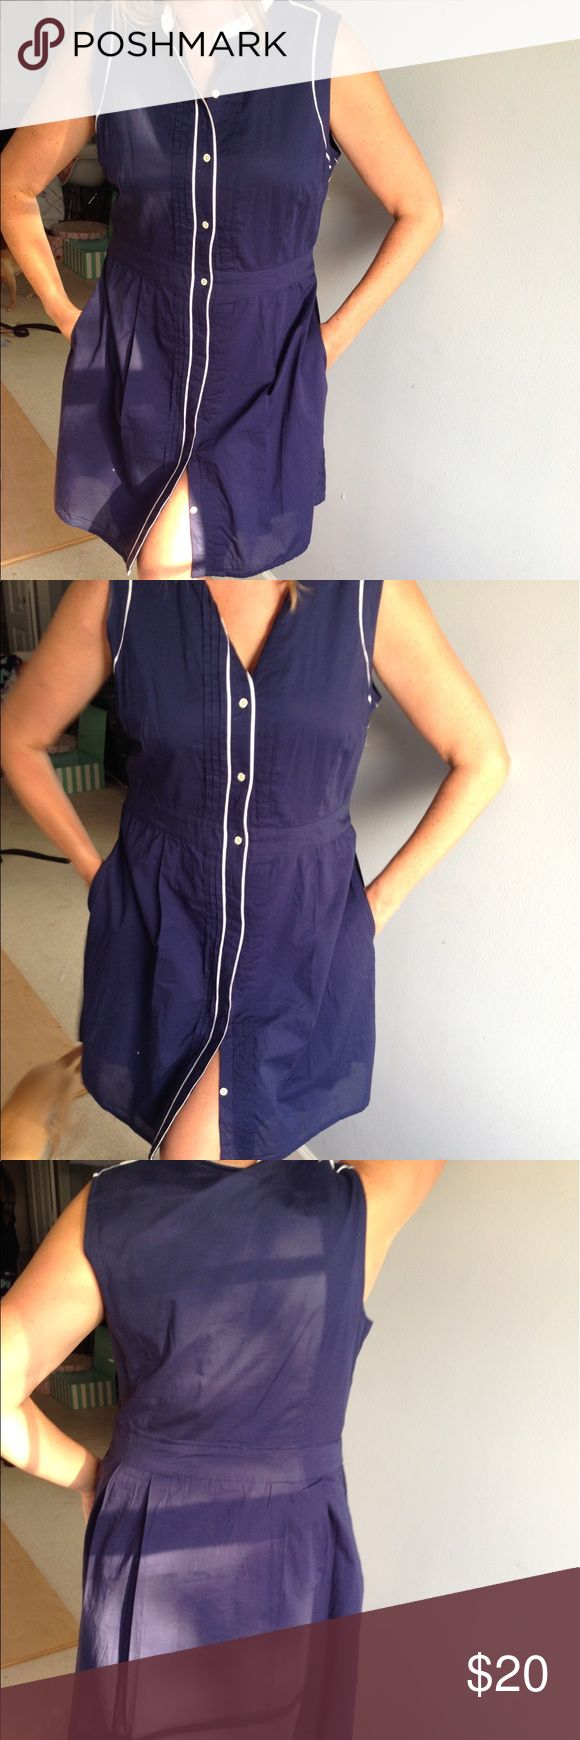 Tommy Hilfiger Nautical A Line Button Down Dress Perfect condition, nautical looking navy and white button down dress. Size XL! Tommy Hilfiger Dresses Midi